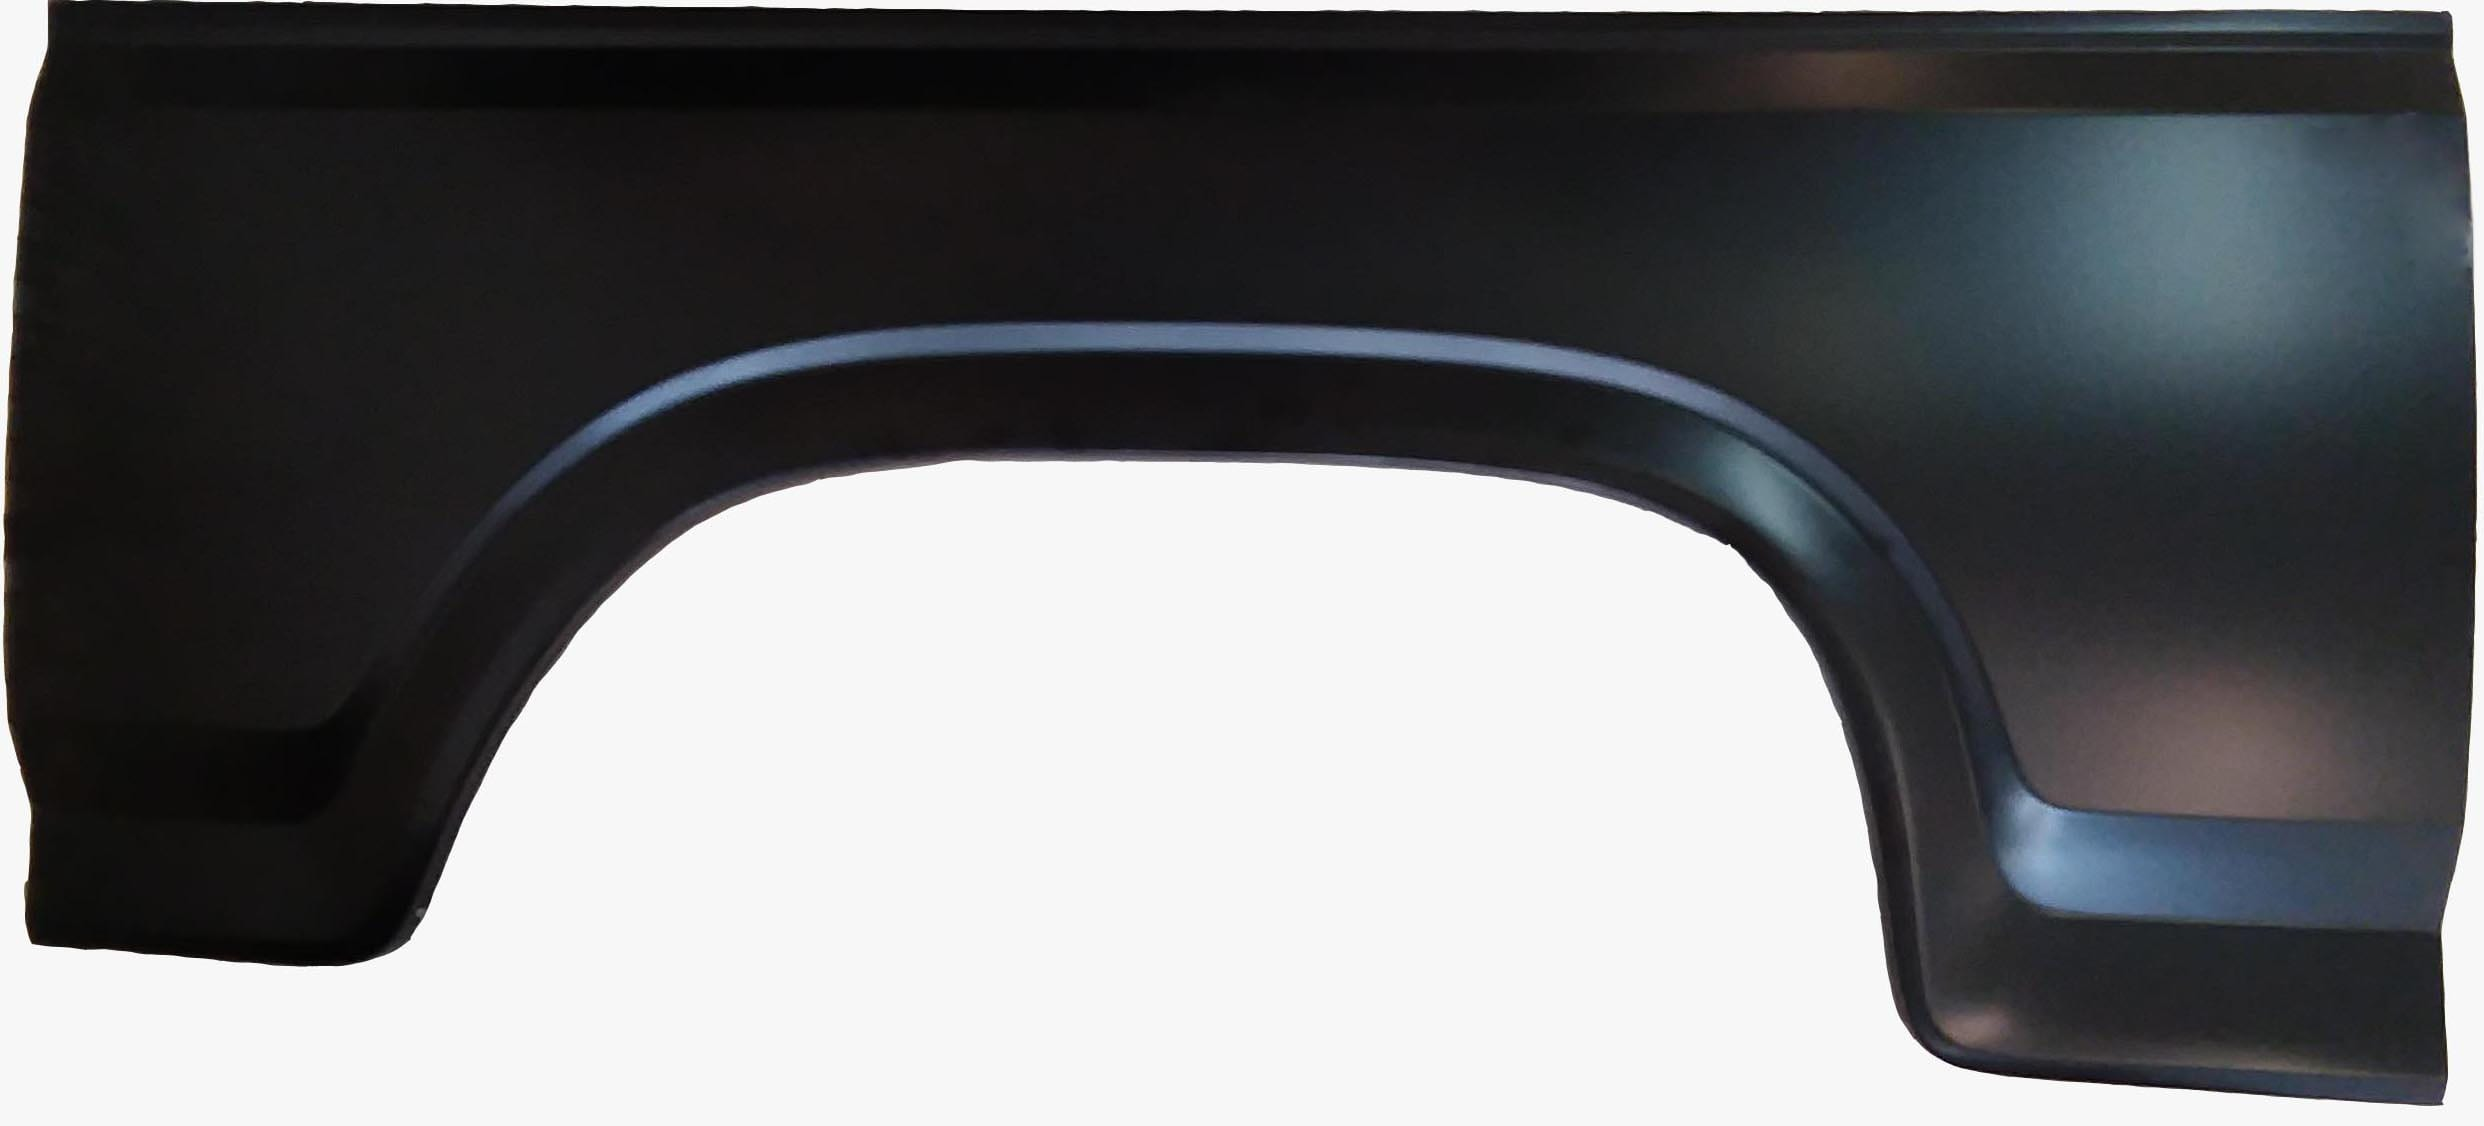 1980-1986 Ford Pickup Large Wheel Arch, Passenger's Side